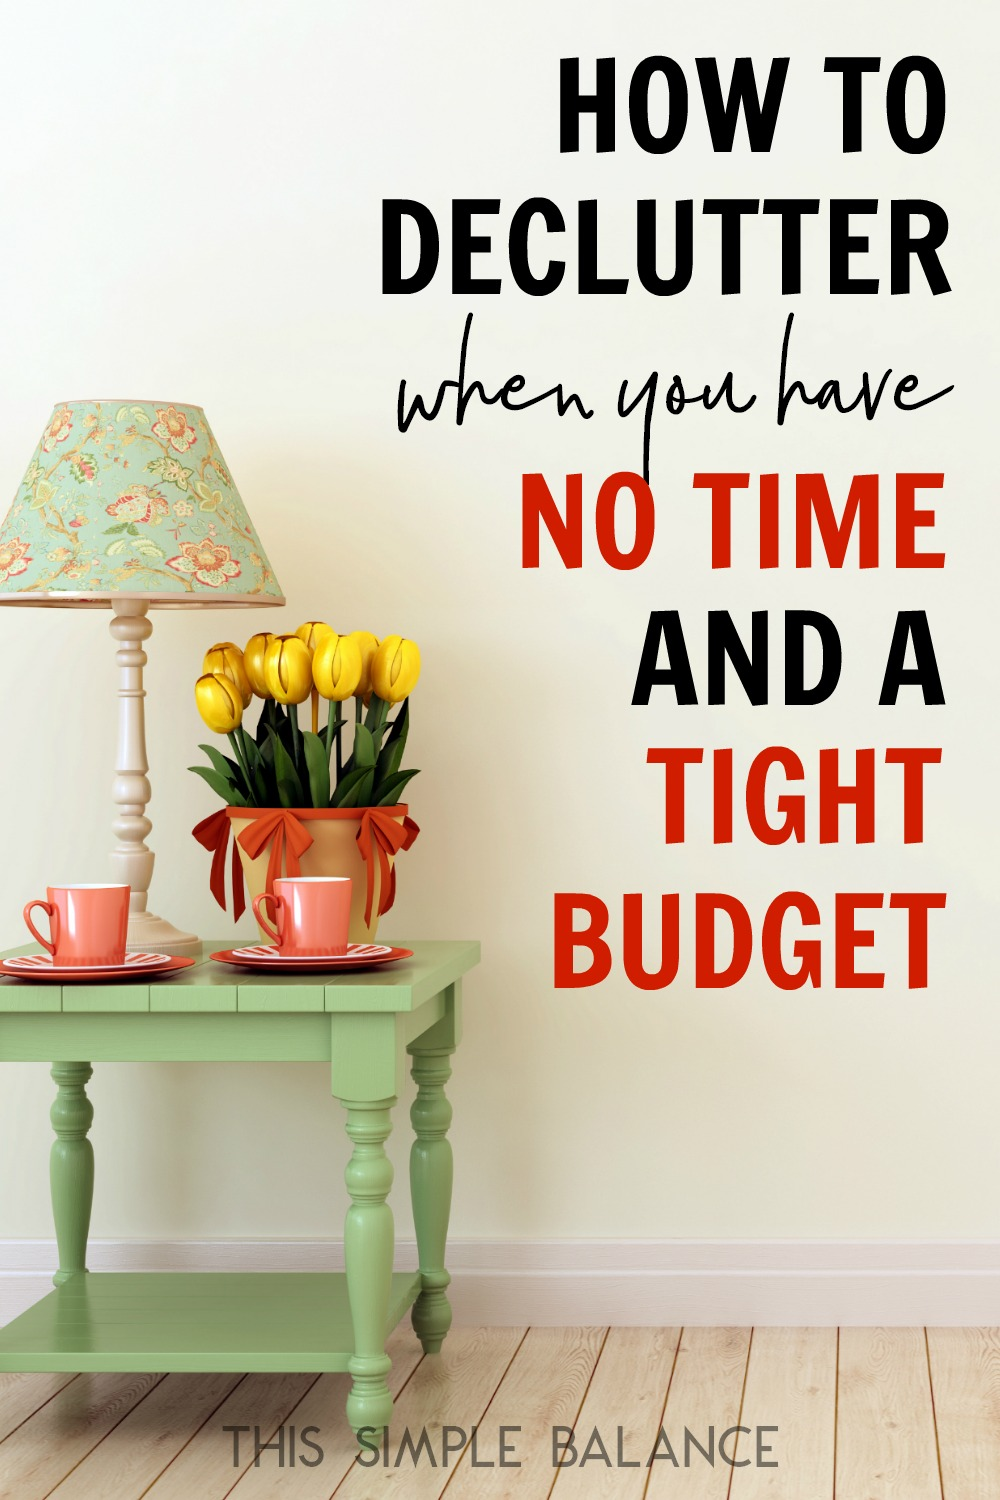 Decluttering with No Time AND on a Tight Budget: So you already have not time, and any time you do have to declutter gets sucked up by decision fatigue because you are afraid you will declutter something you will need later. Sound like you? This decluttering guide is for you!